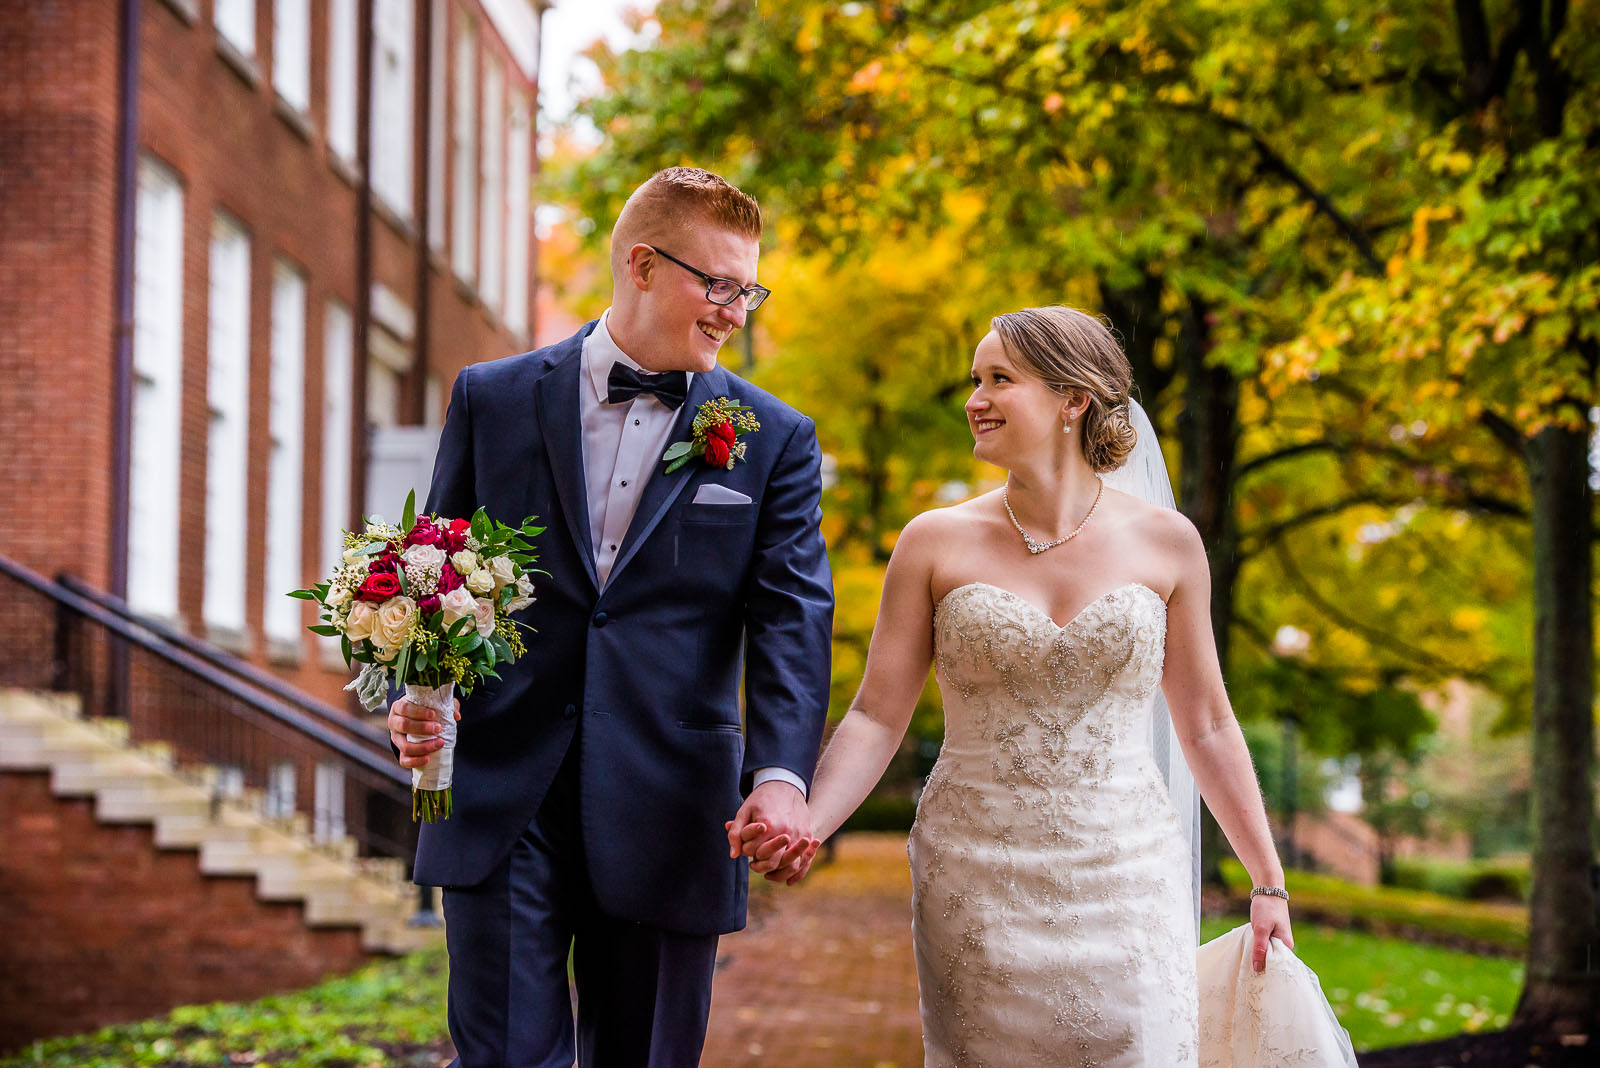 Eric_and_Christy_Photography_Blog_Wedding_Erica_Mike-57